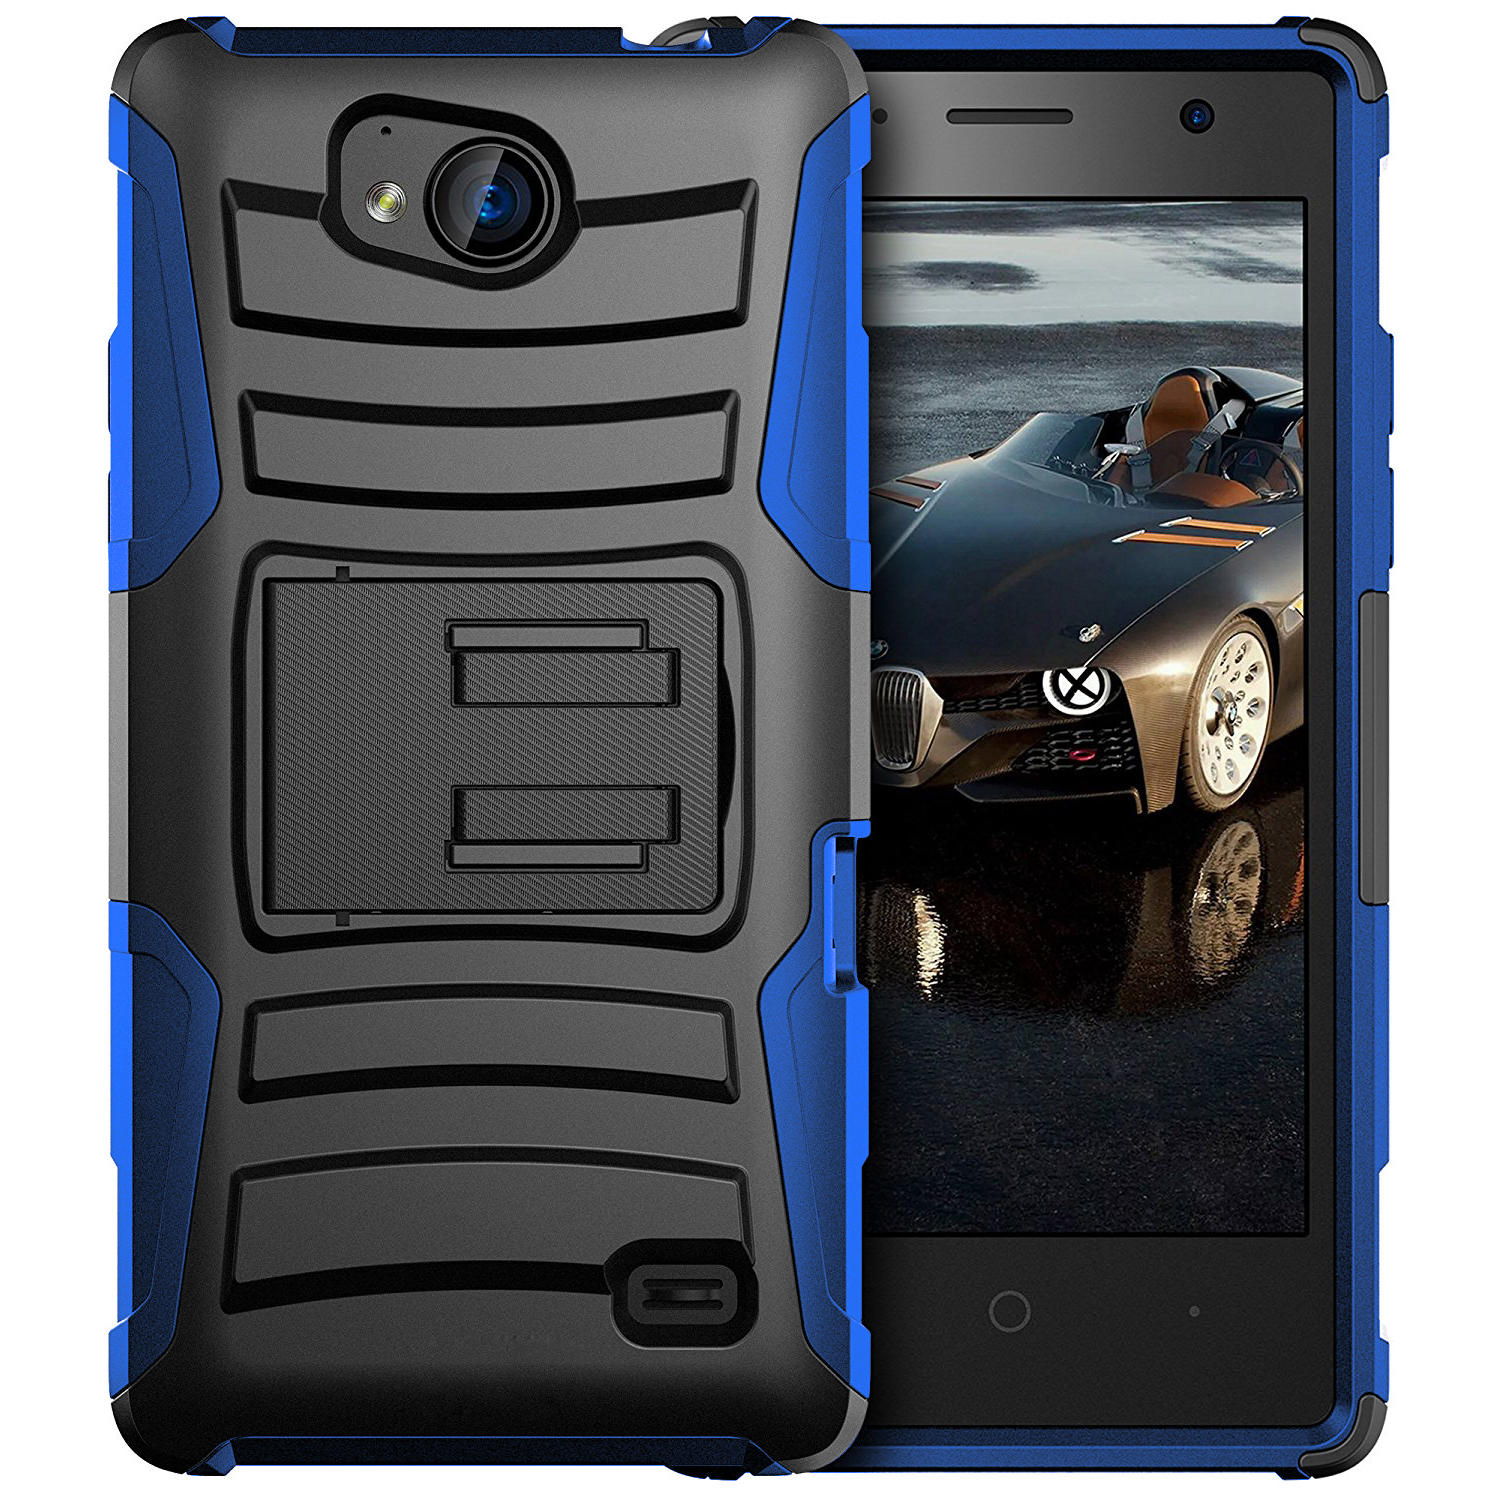 [ZTE Tempo] Holster Case, REDshield [Blue/ Black] Supreme Protection Hard Plastic on Silicone Skin Dual Layer Hybrid Case with Travel Wallet Phone Stand